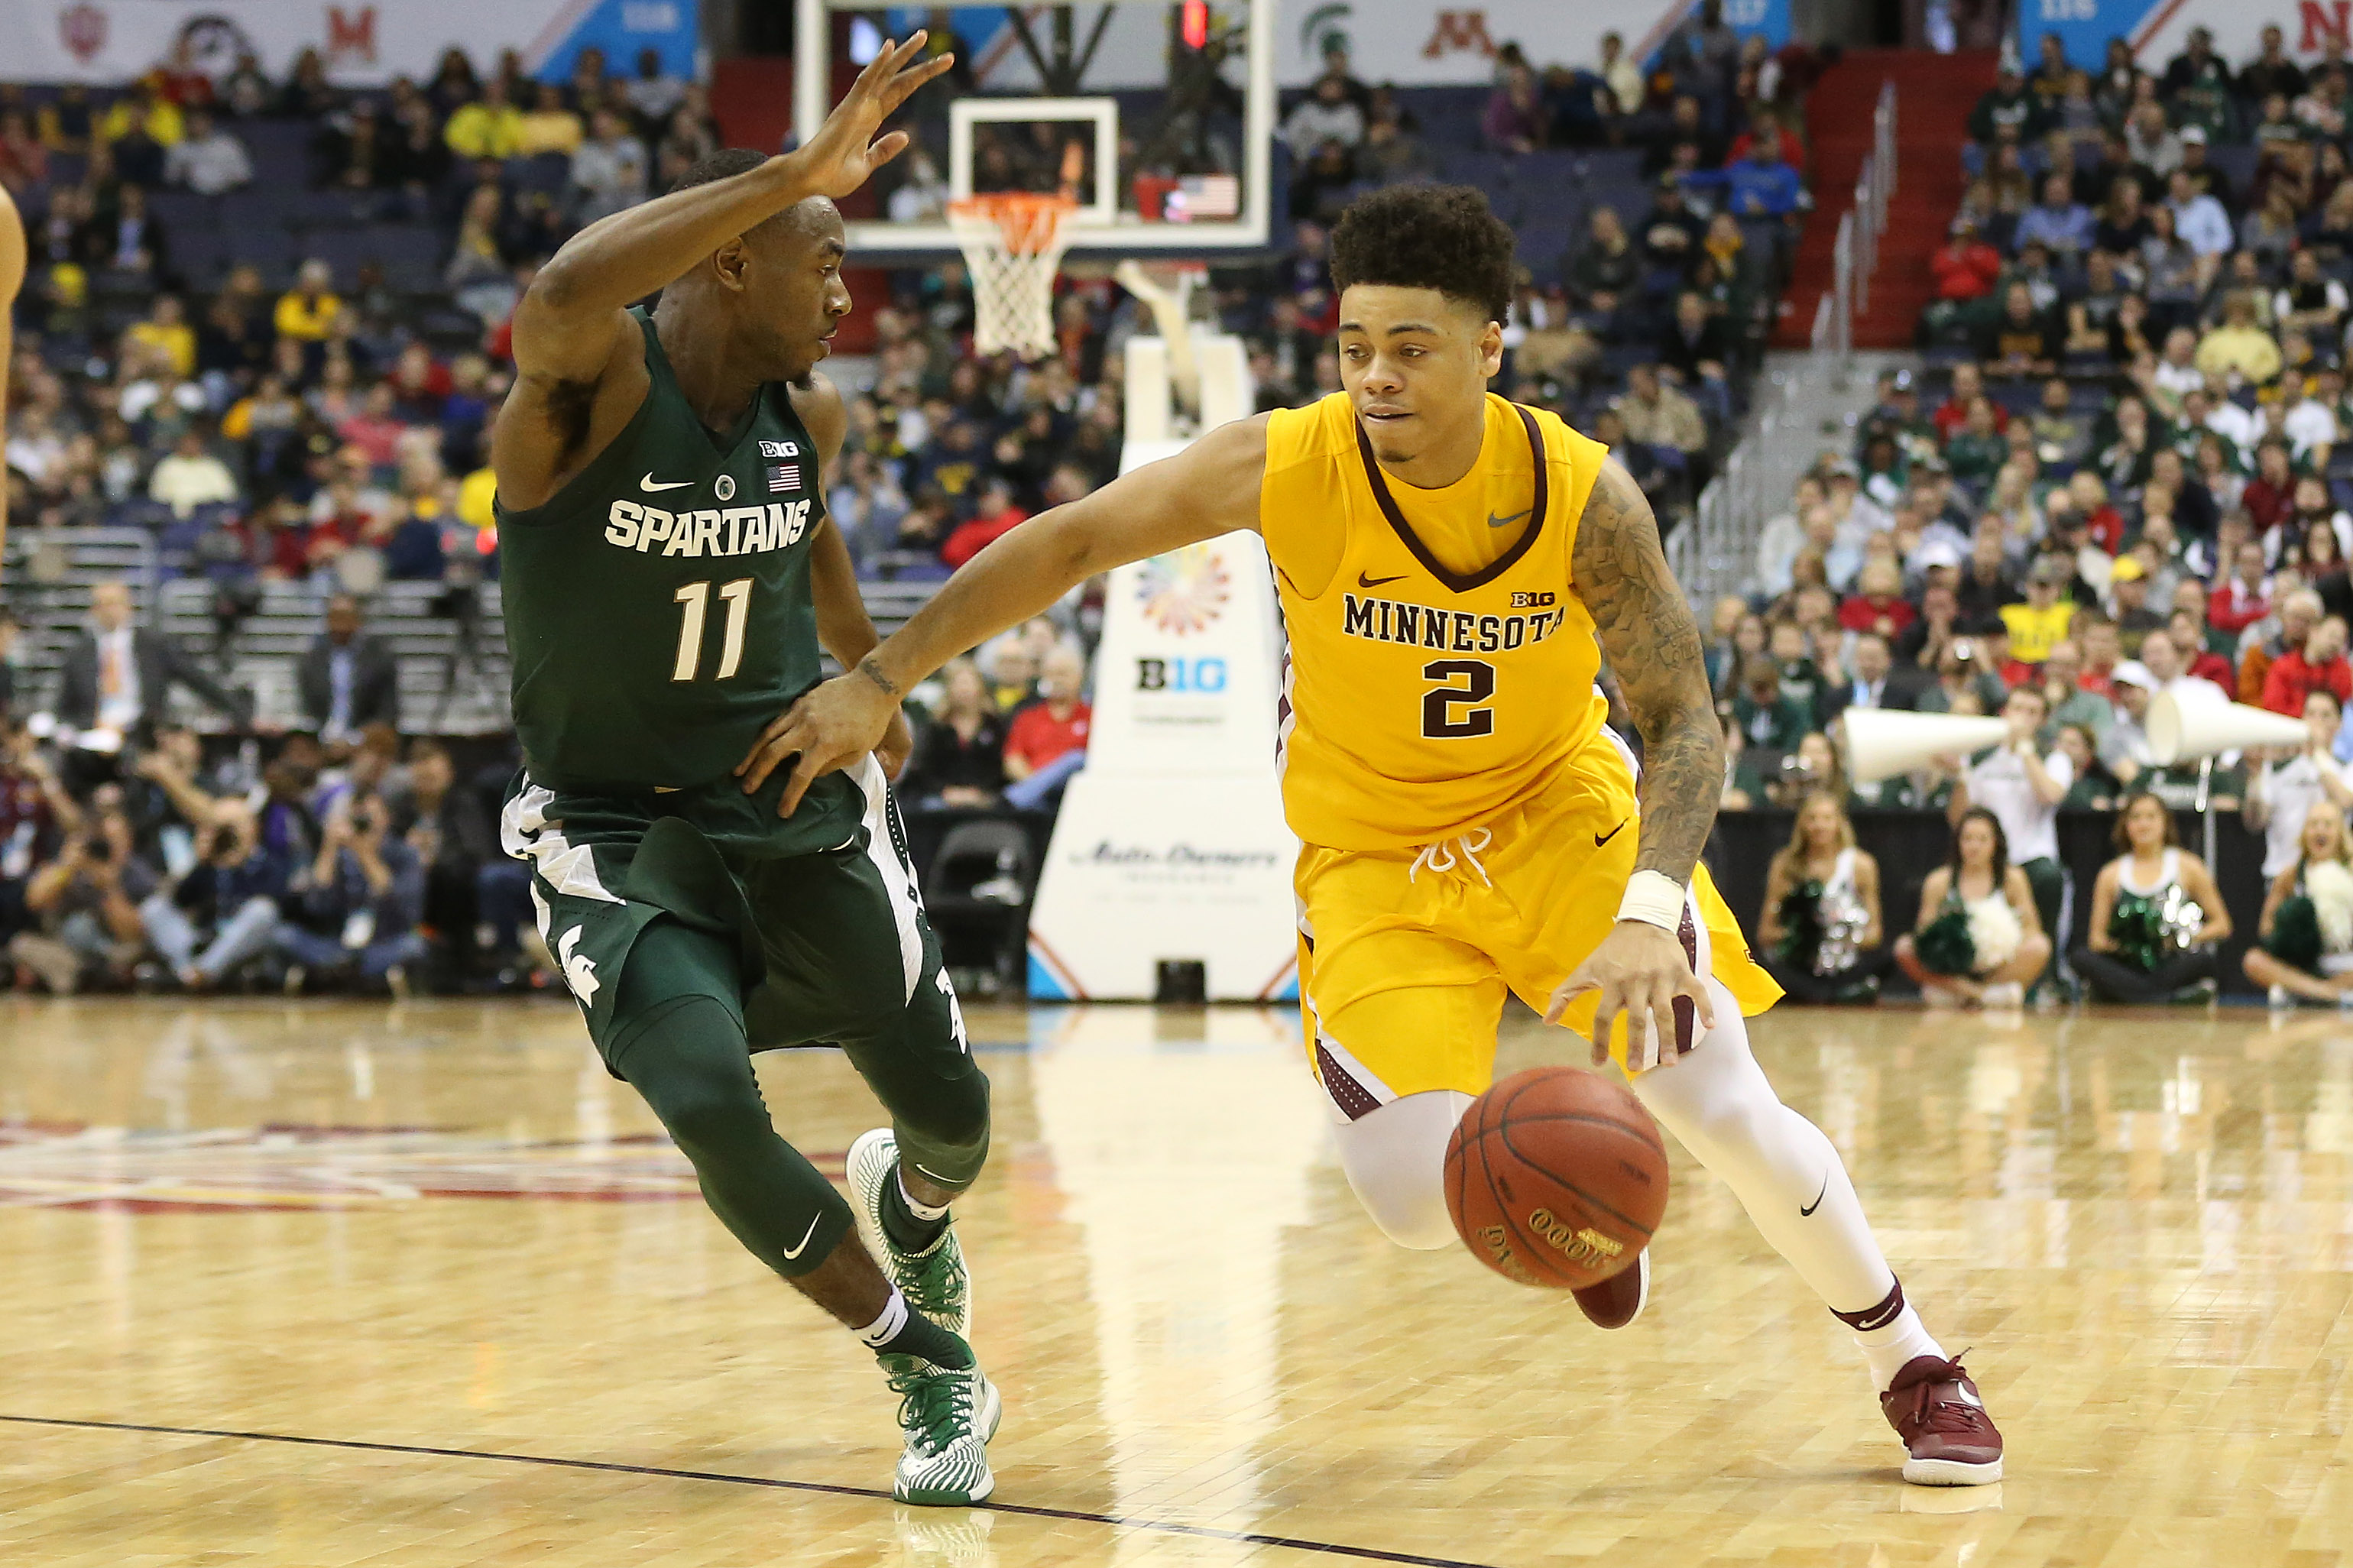 Ncaa Tournament 2017 What Channel Is Tbs On Directv